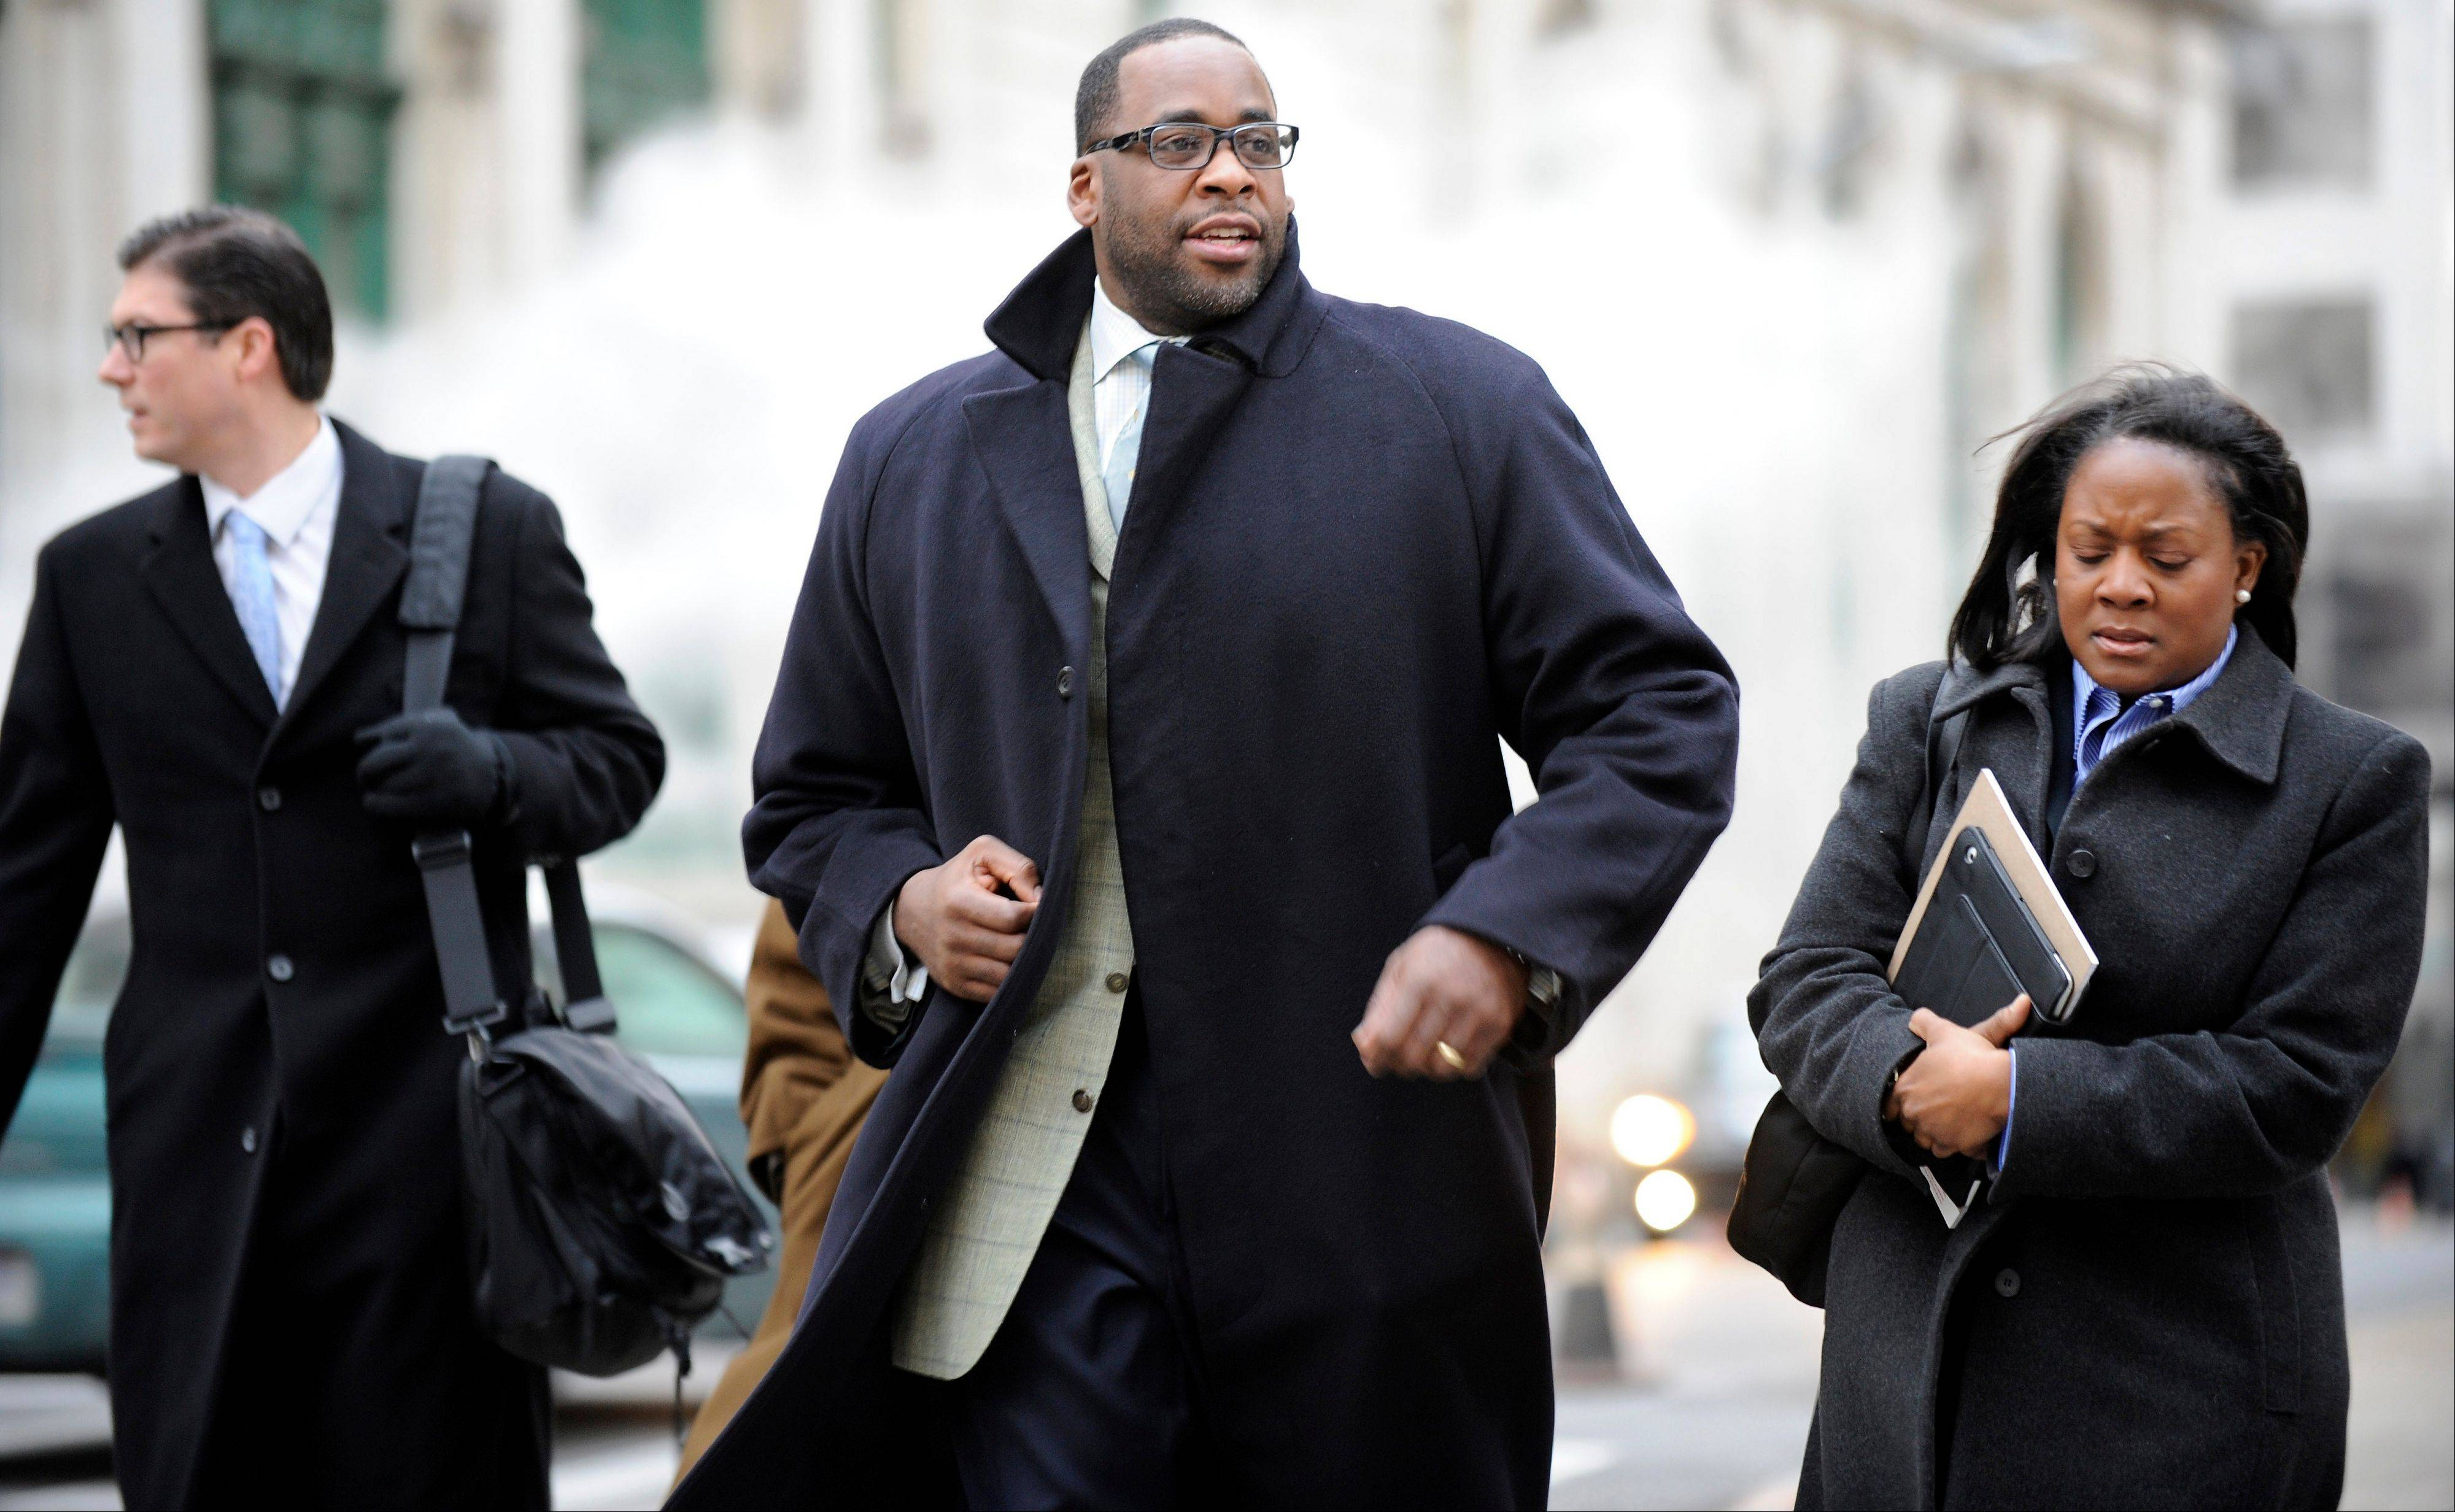 Former Detroit Mayor Kwame Kilpatrick will spend this weekend in prison as a penalty for 14 parole violations, a state spokesman said Friday, Jan. 25, 2013. Kilpatrick is to report to the Detroit Reentry Center Friday afternoon and will be released from custody early Monday.